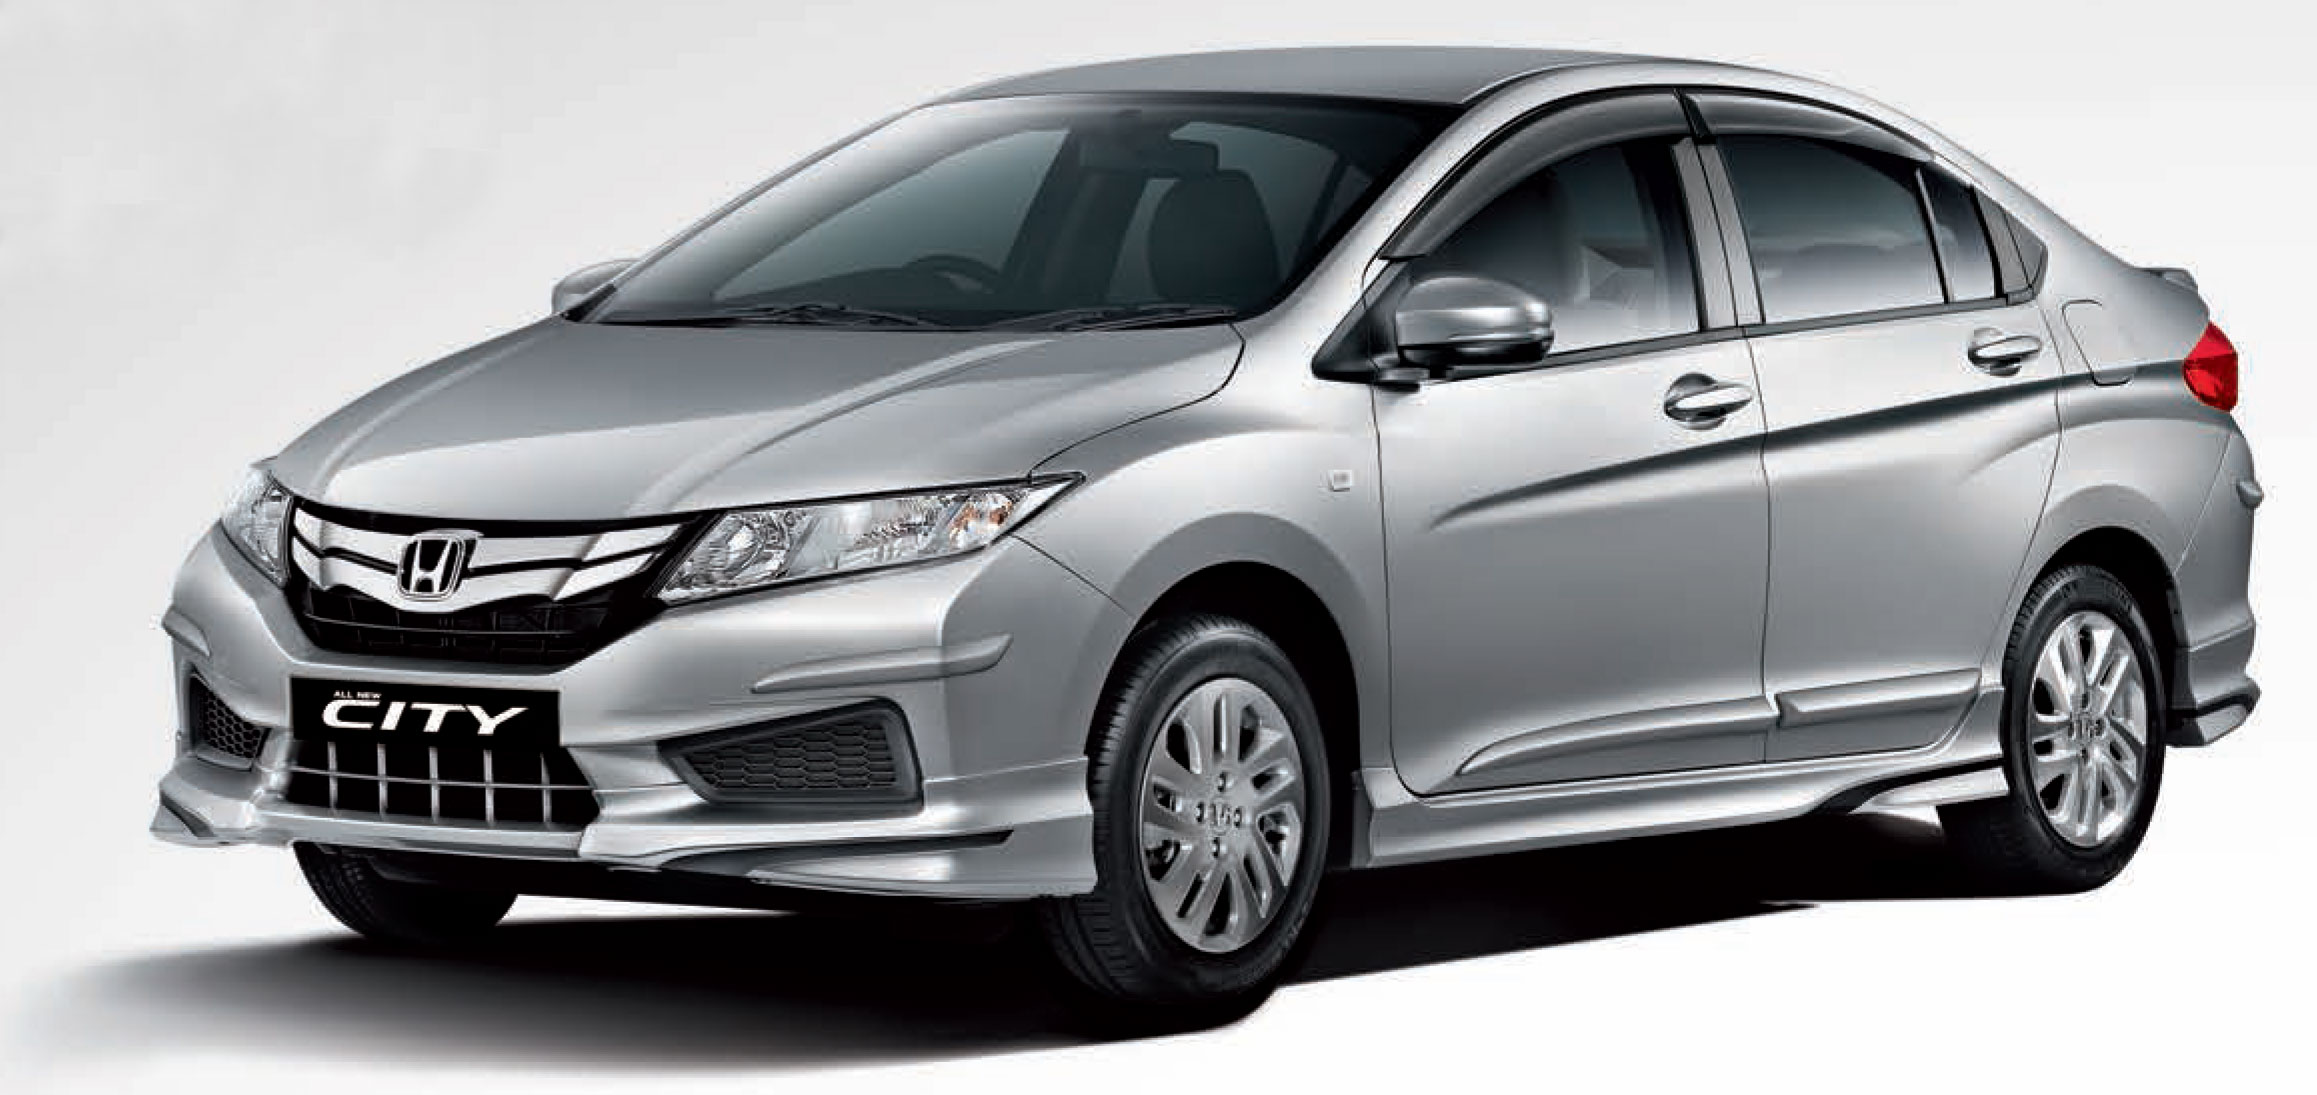 Back to Story: 2014 Honda City launched in India – new details